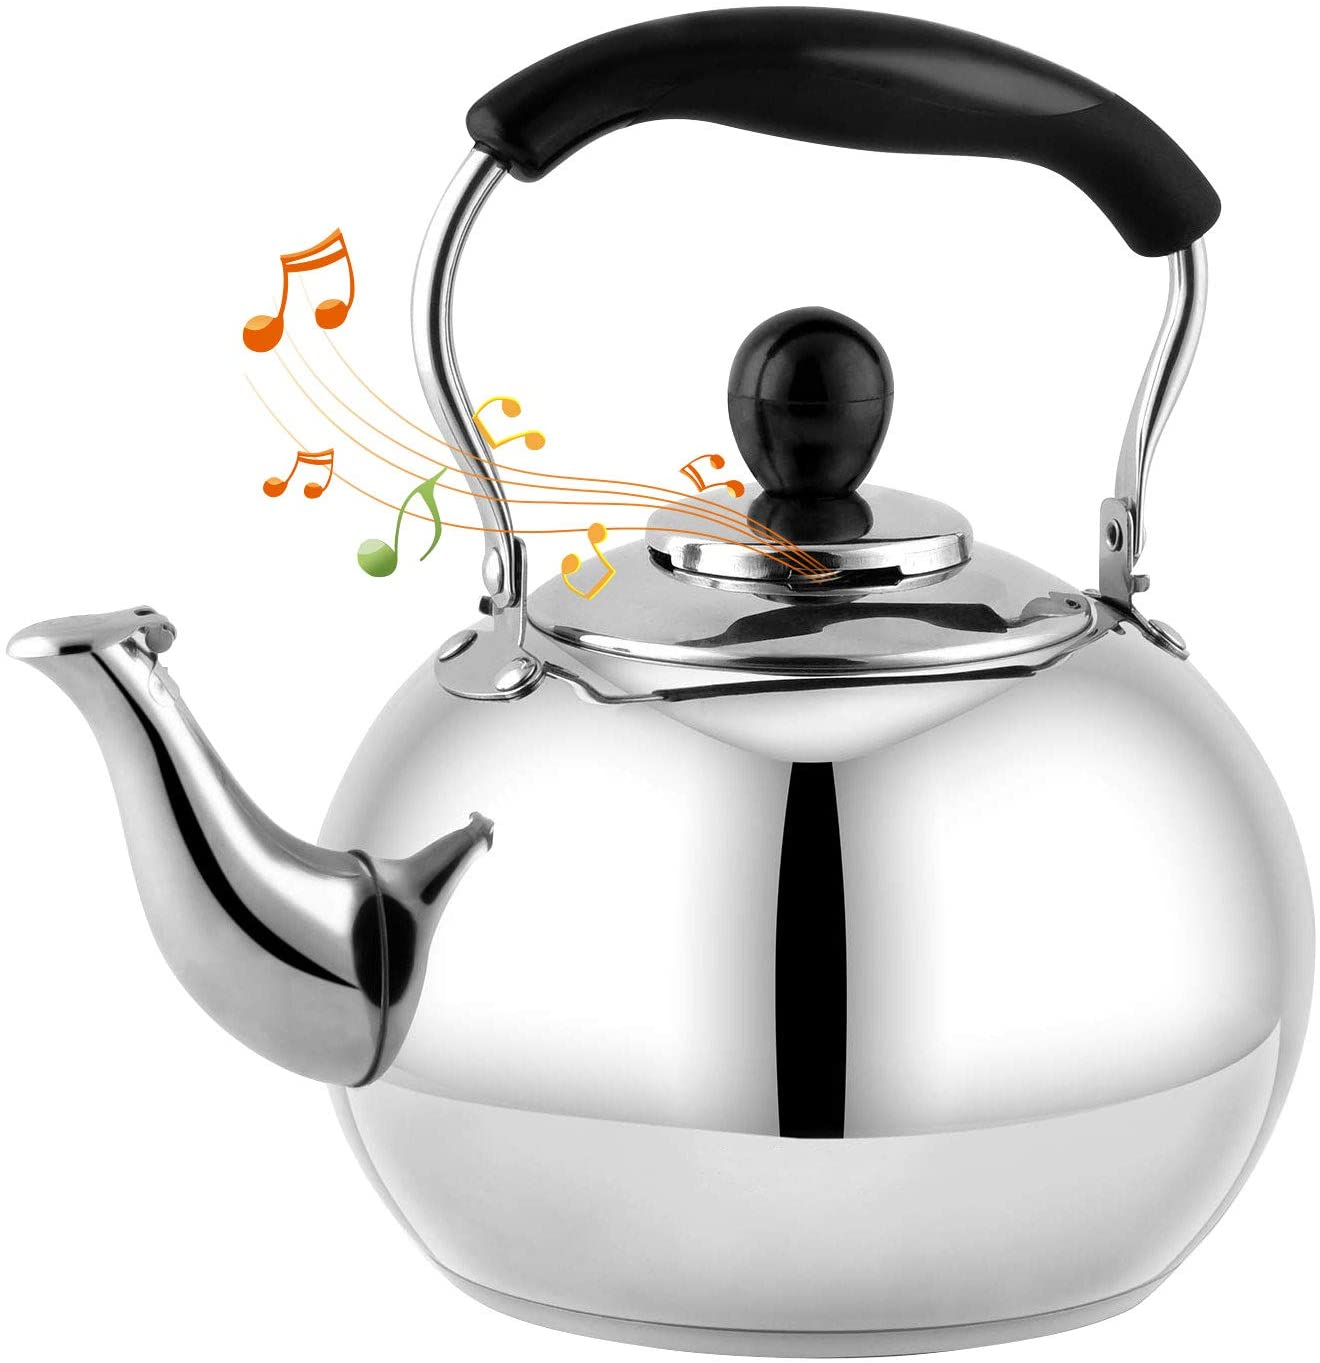 DclobTop Stove Top Whistling Tea Kettle